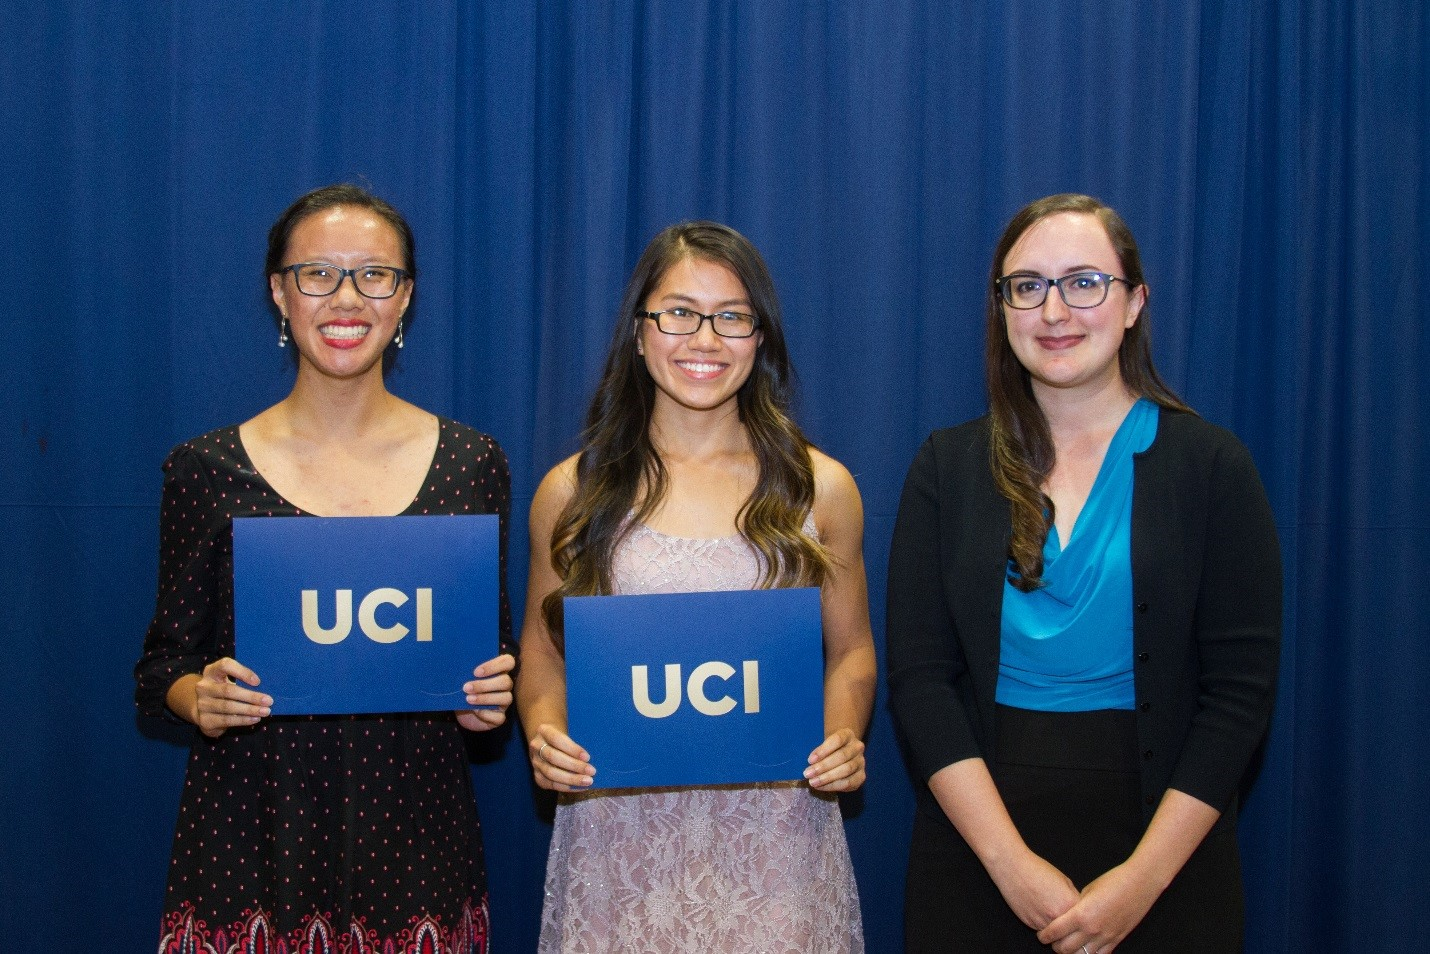 UCI Students Amber Fong and Celine Phong and UCI Libraries Education & Outreach Librarian Nicole Helregel